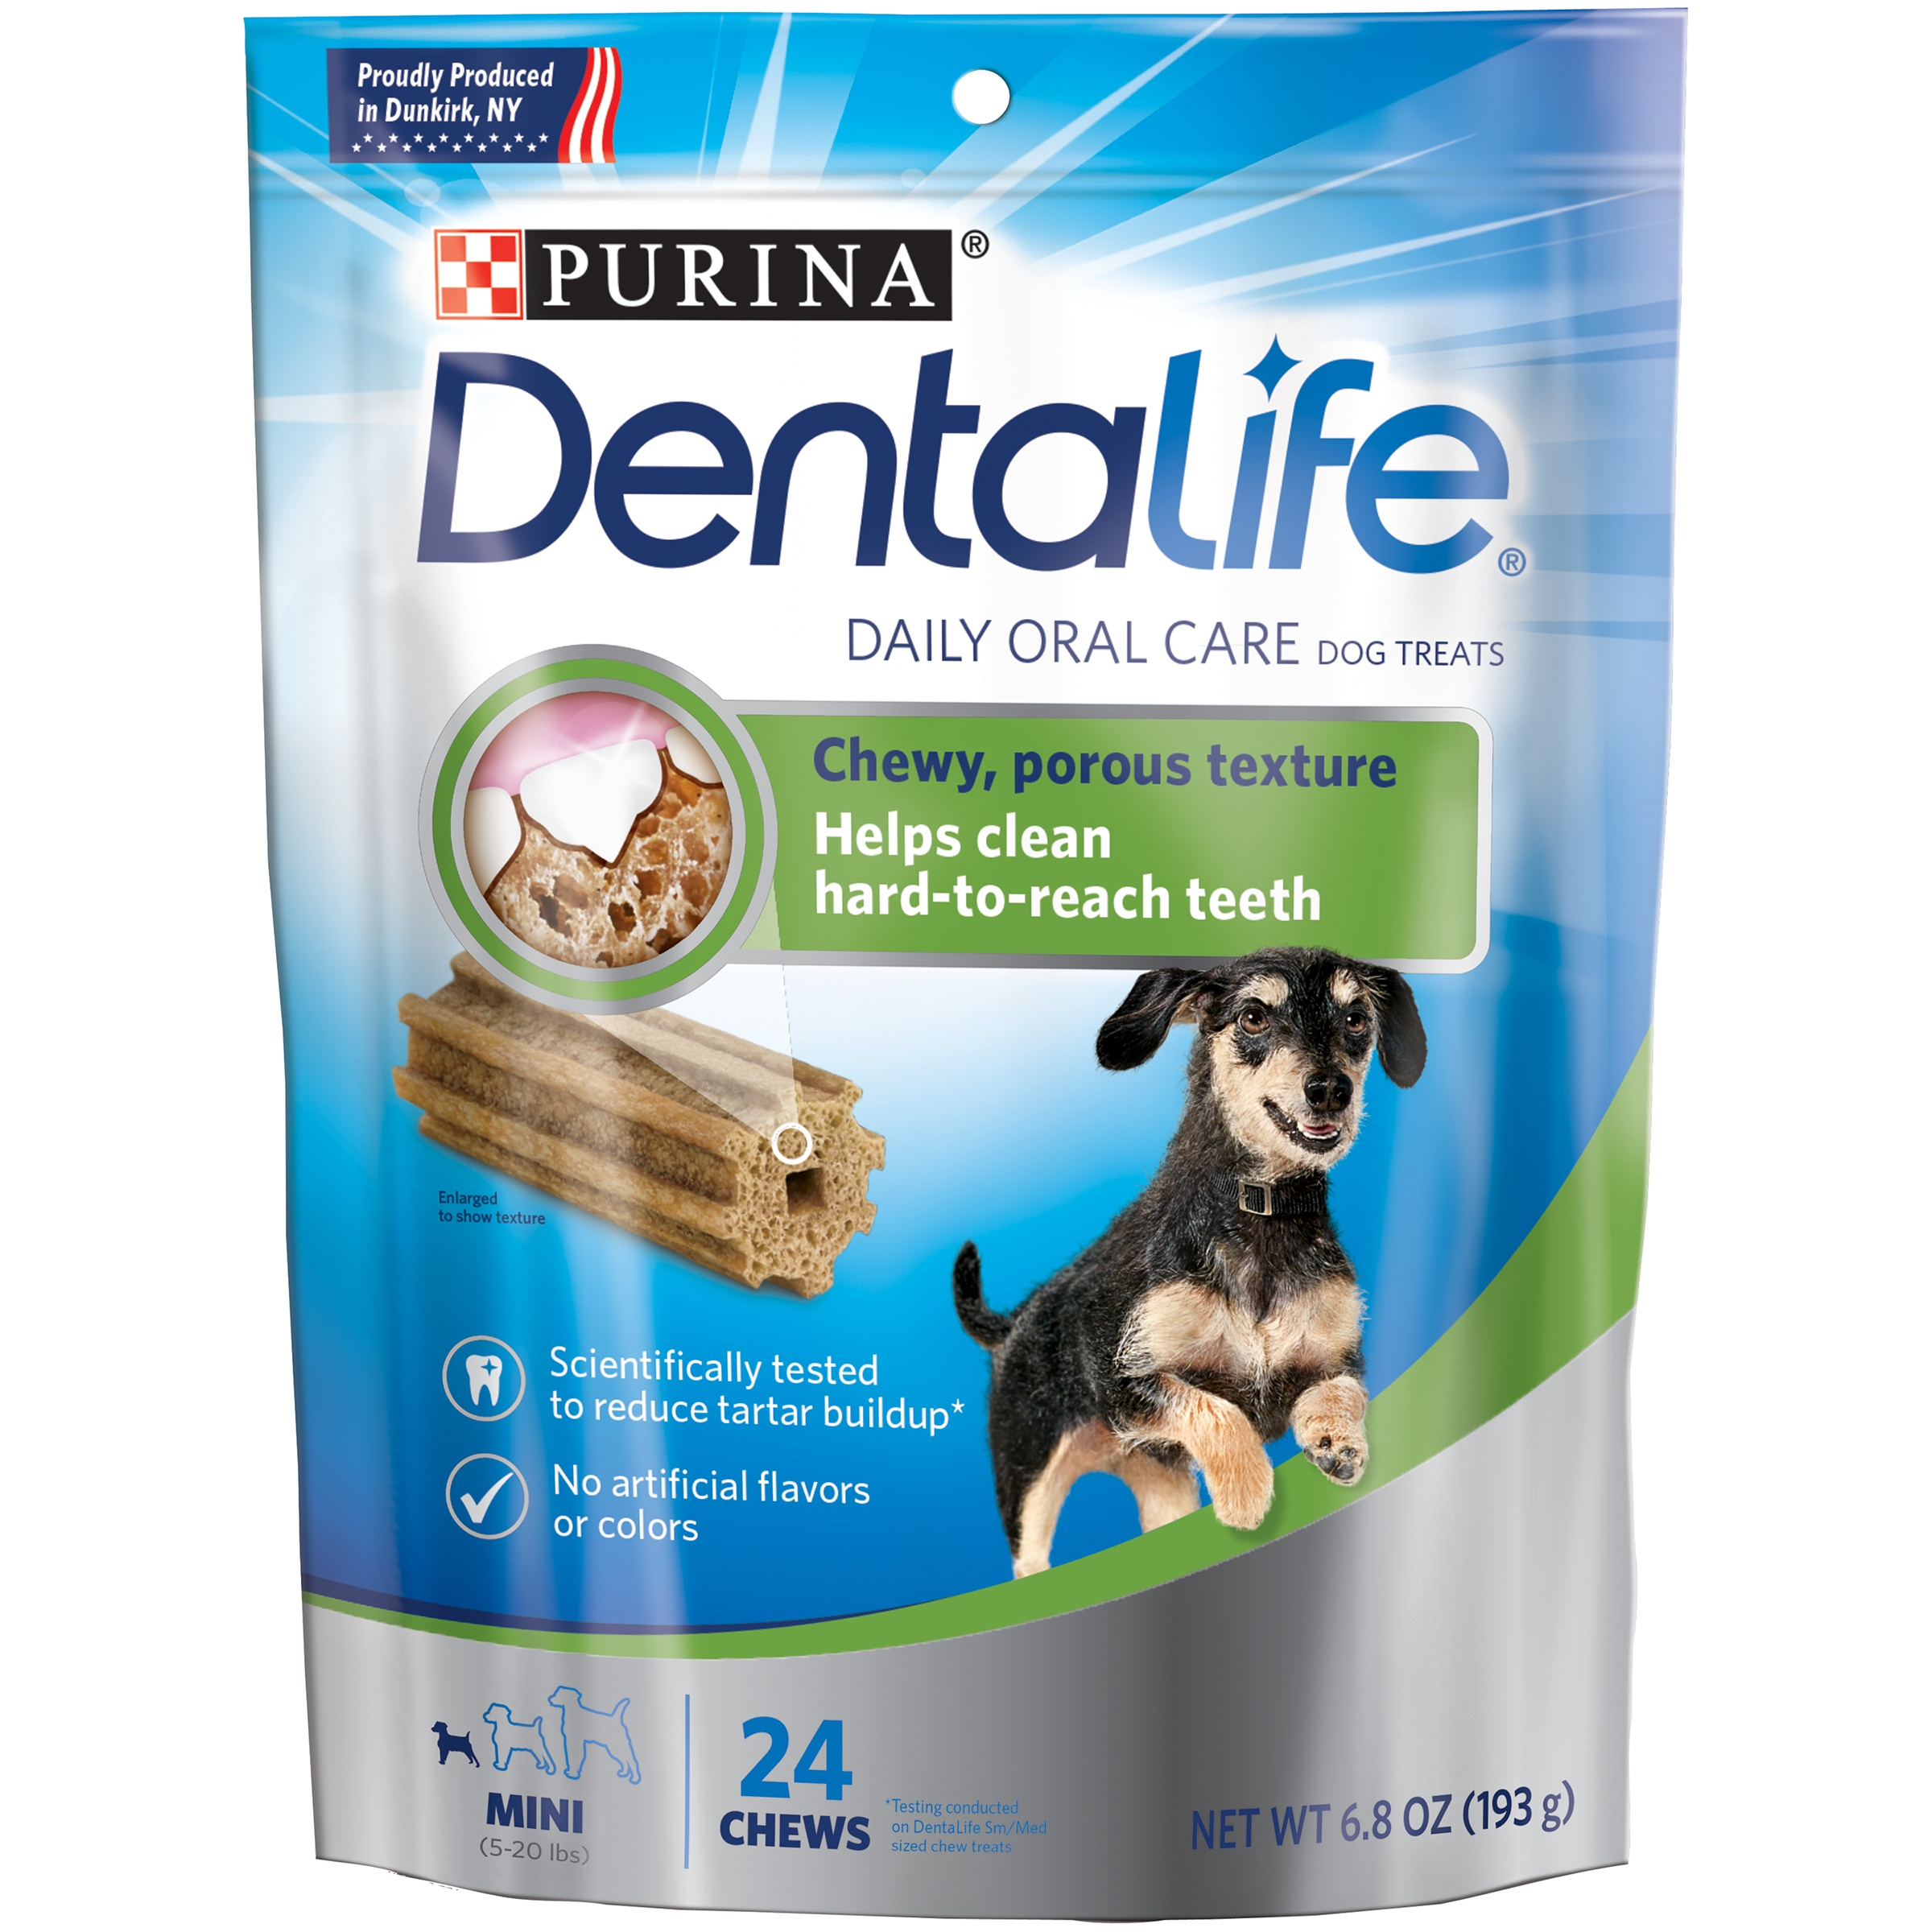 Purina DentaLife Daily Oral Care Mini Dog Treats 24 ct Pouch by Nestlé Purina PetCare Company